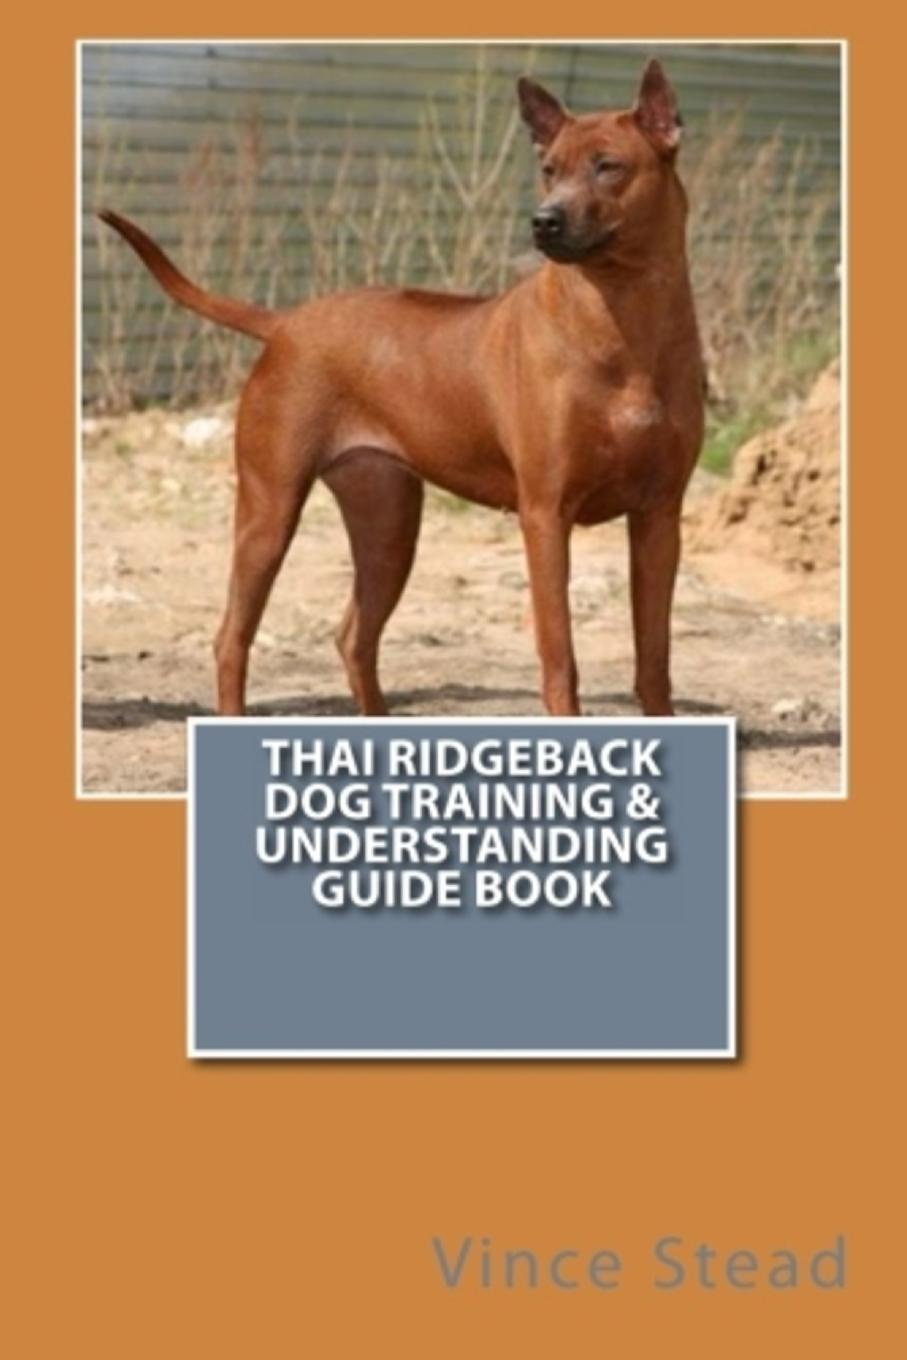 Vince Stead Thai Ridgeback Dog Training & Understanding Guide Book meridith mckinnon the thai wife